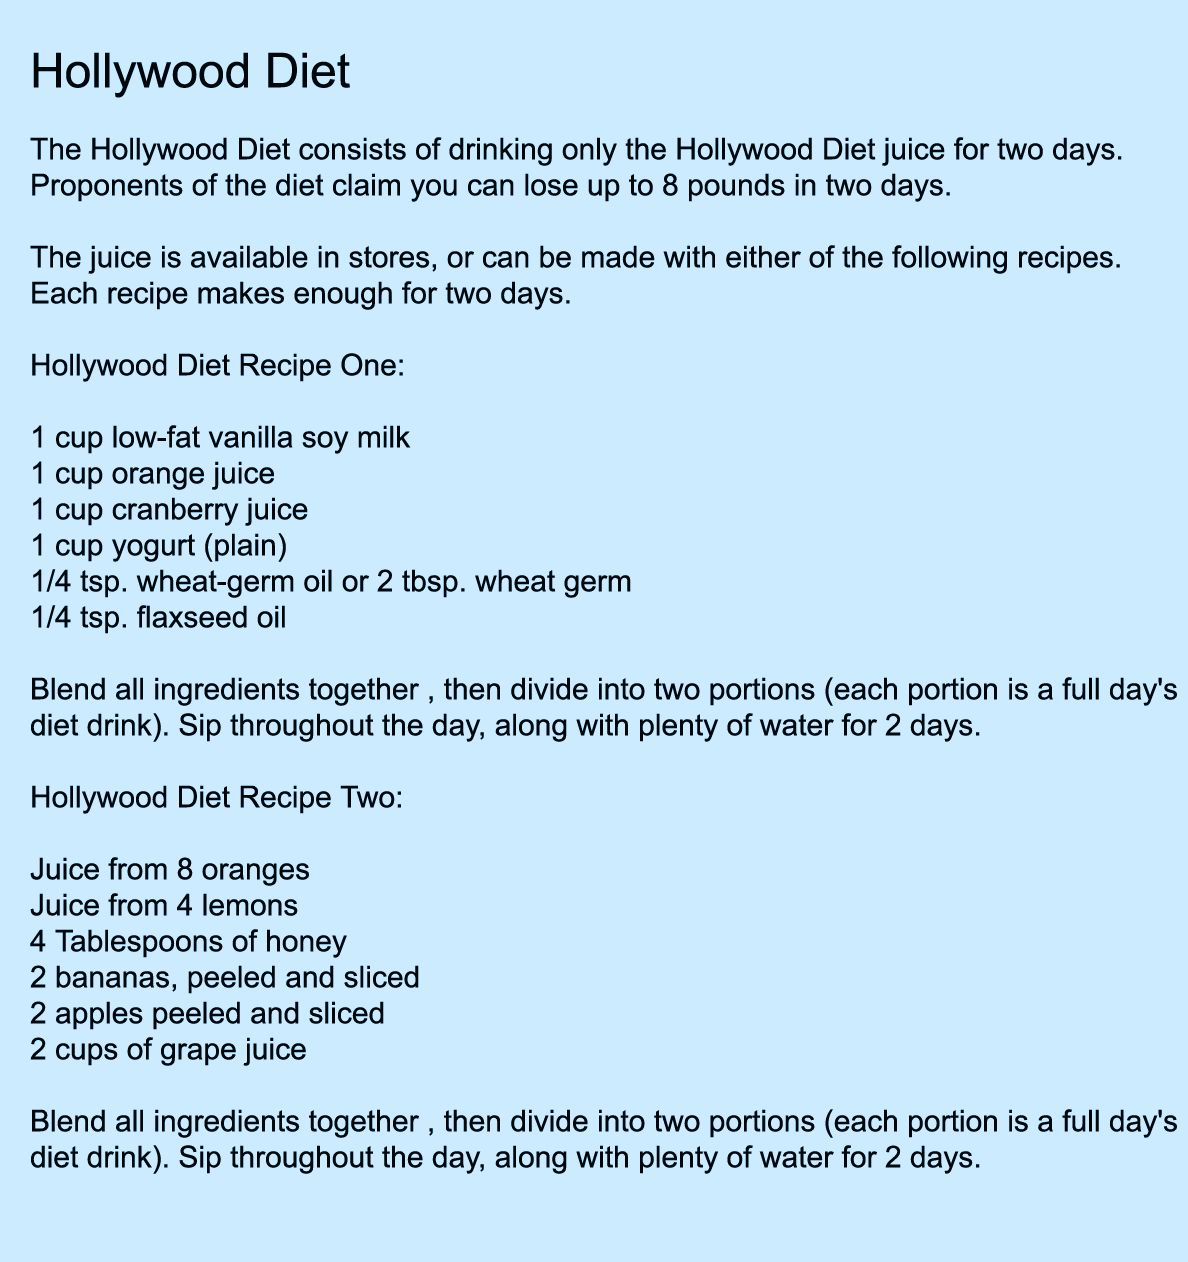 48 hour hollywood diet vs fast